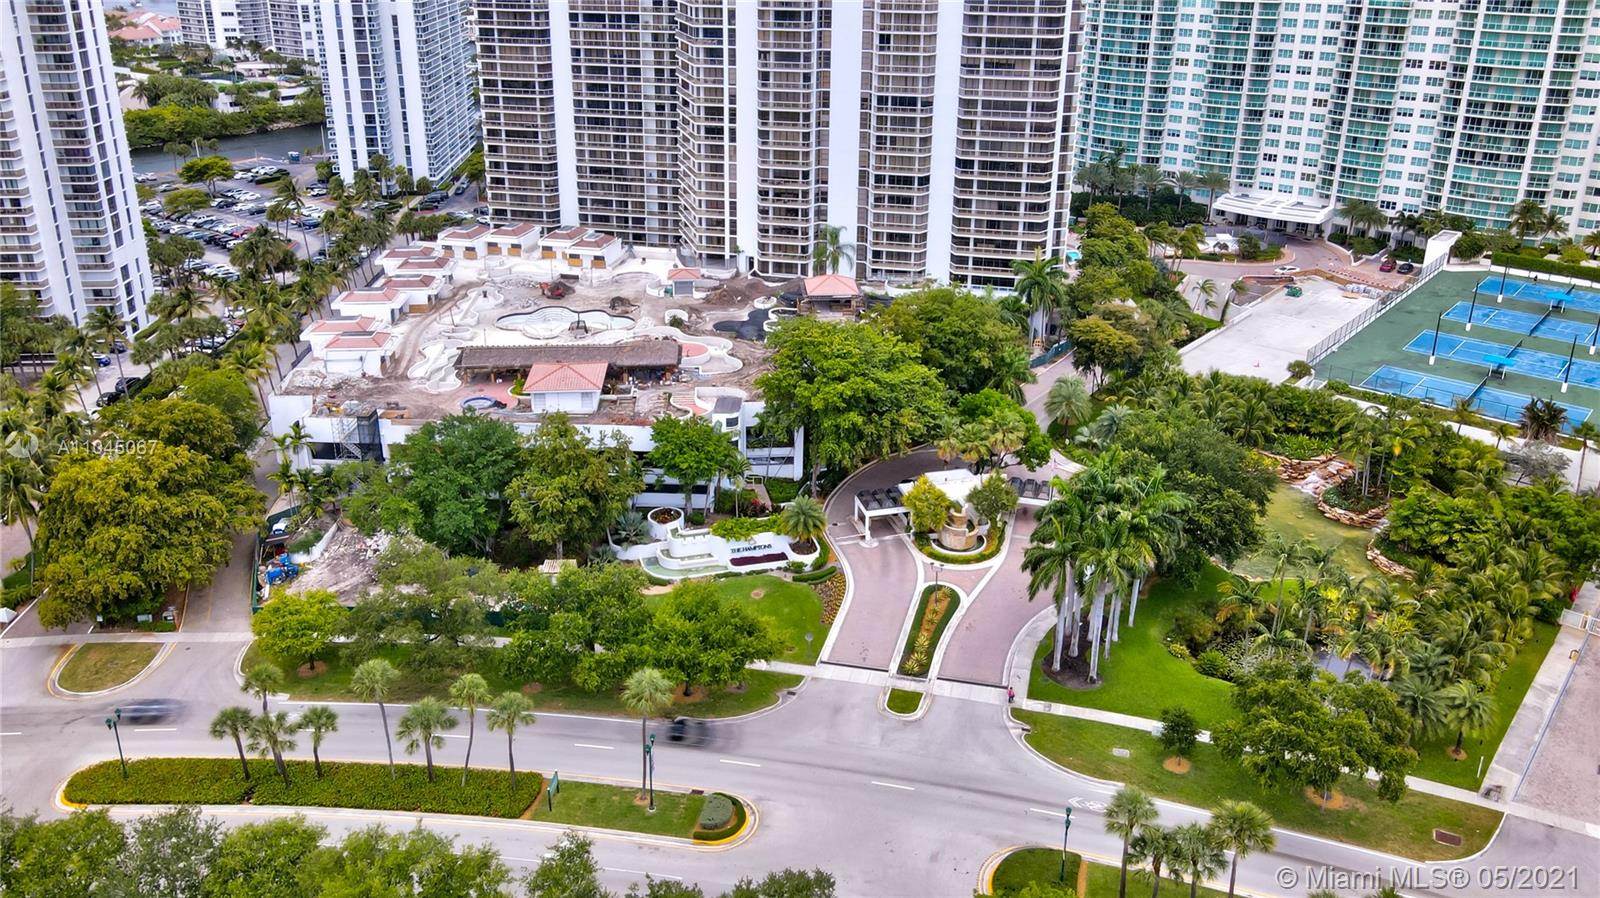 Photo of 20281 Country Club Dr #314, Aventura, Florida, 33180 - Main entry to the Hamptons West and Hamptons South Condominium complex.